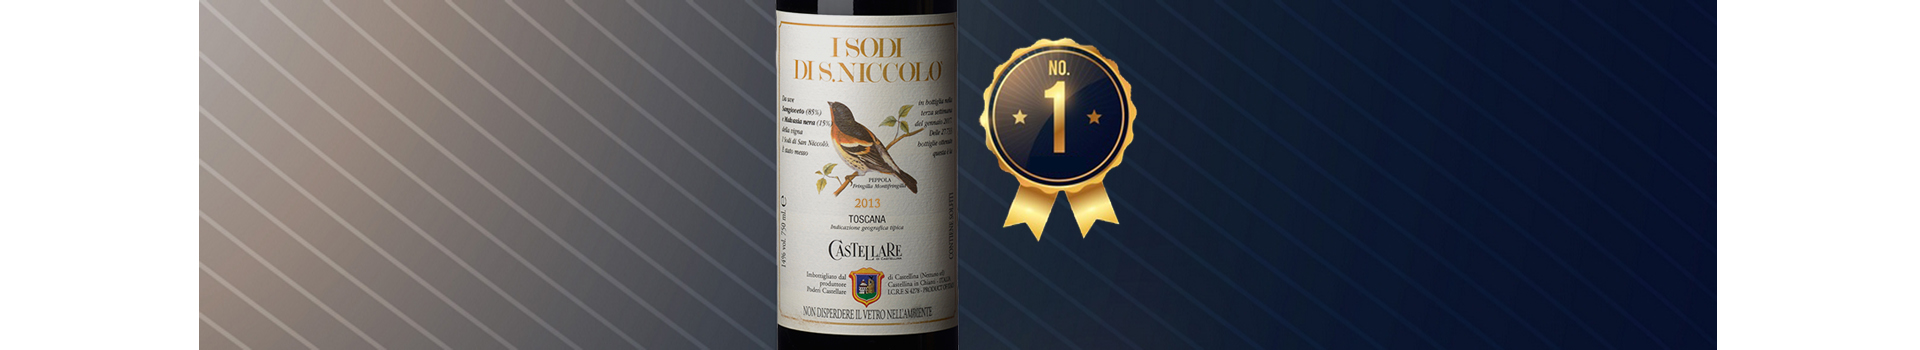 I SODI DI S.NICCOLÒ 2013 THE BEST ITALIAN RED WINE